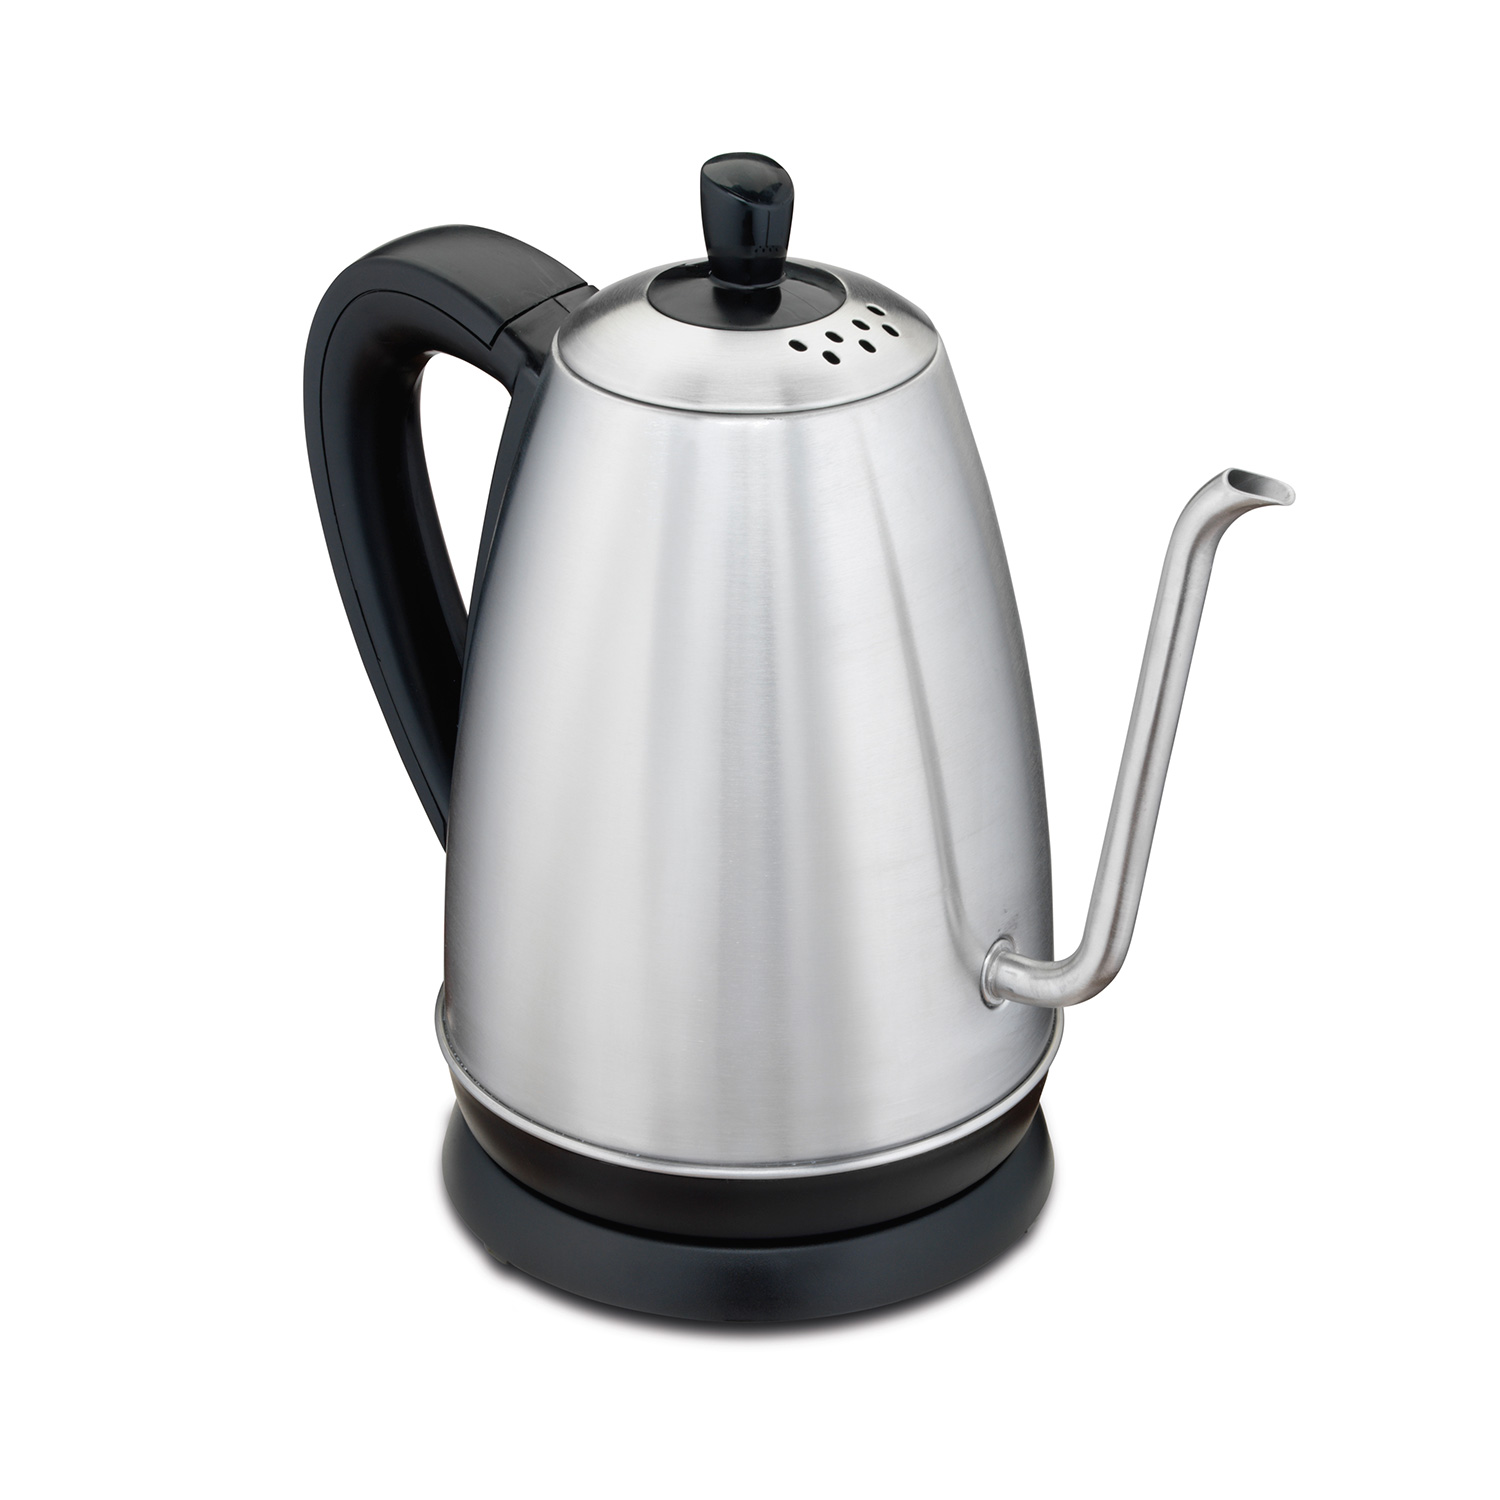 Electric 1.2 Liter Gooseneck Kettle (40899)